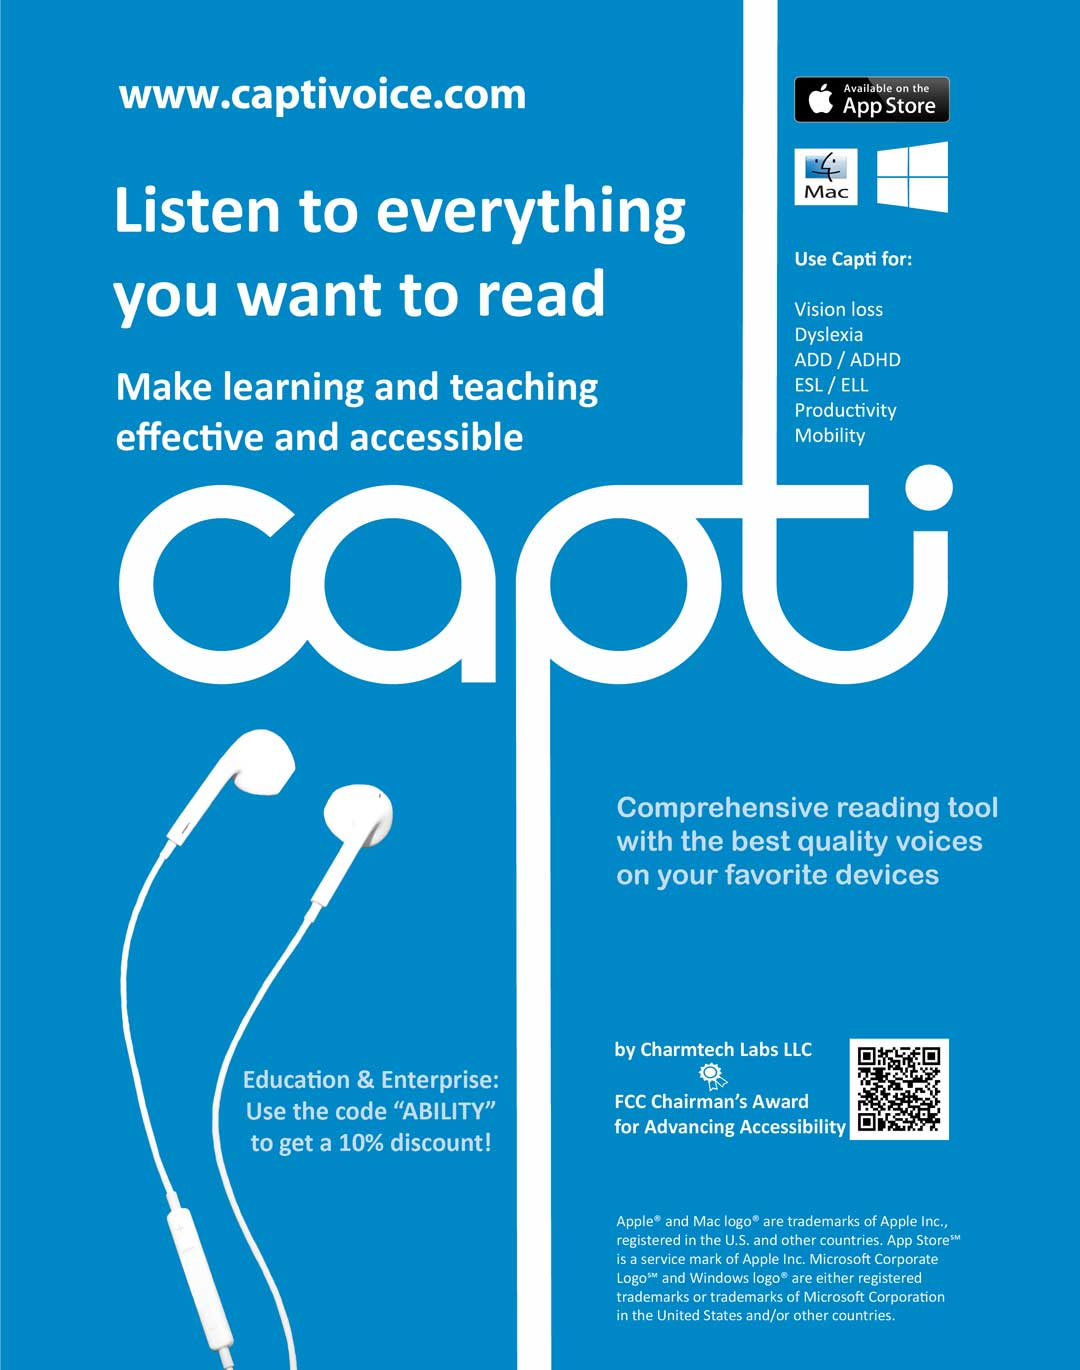 Capti - Listen to everything you want to read